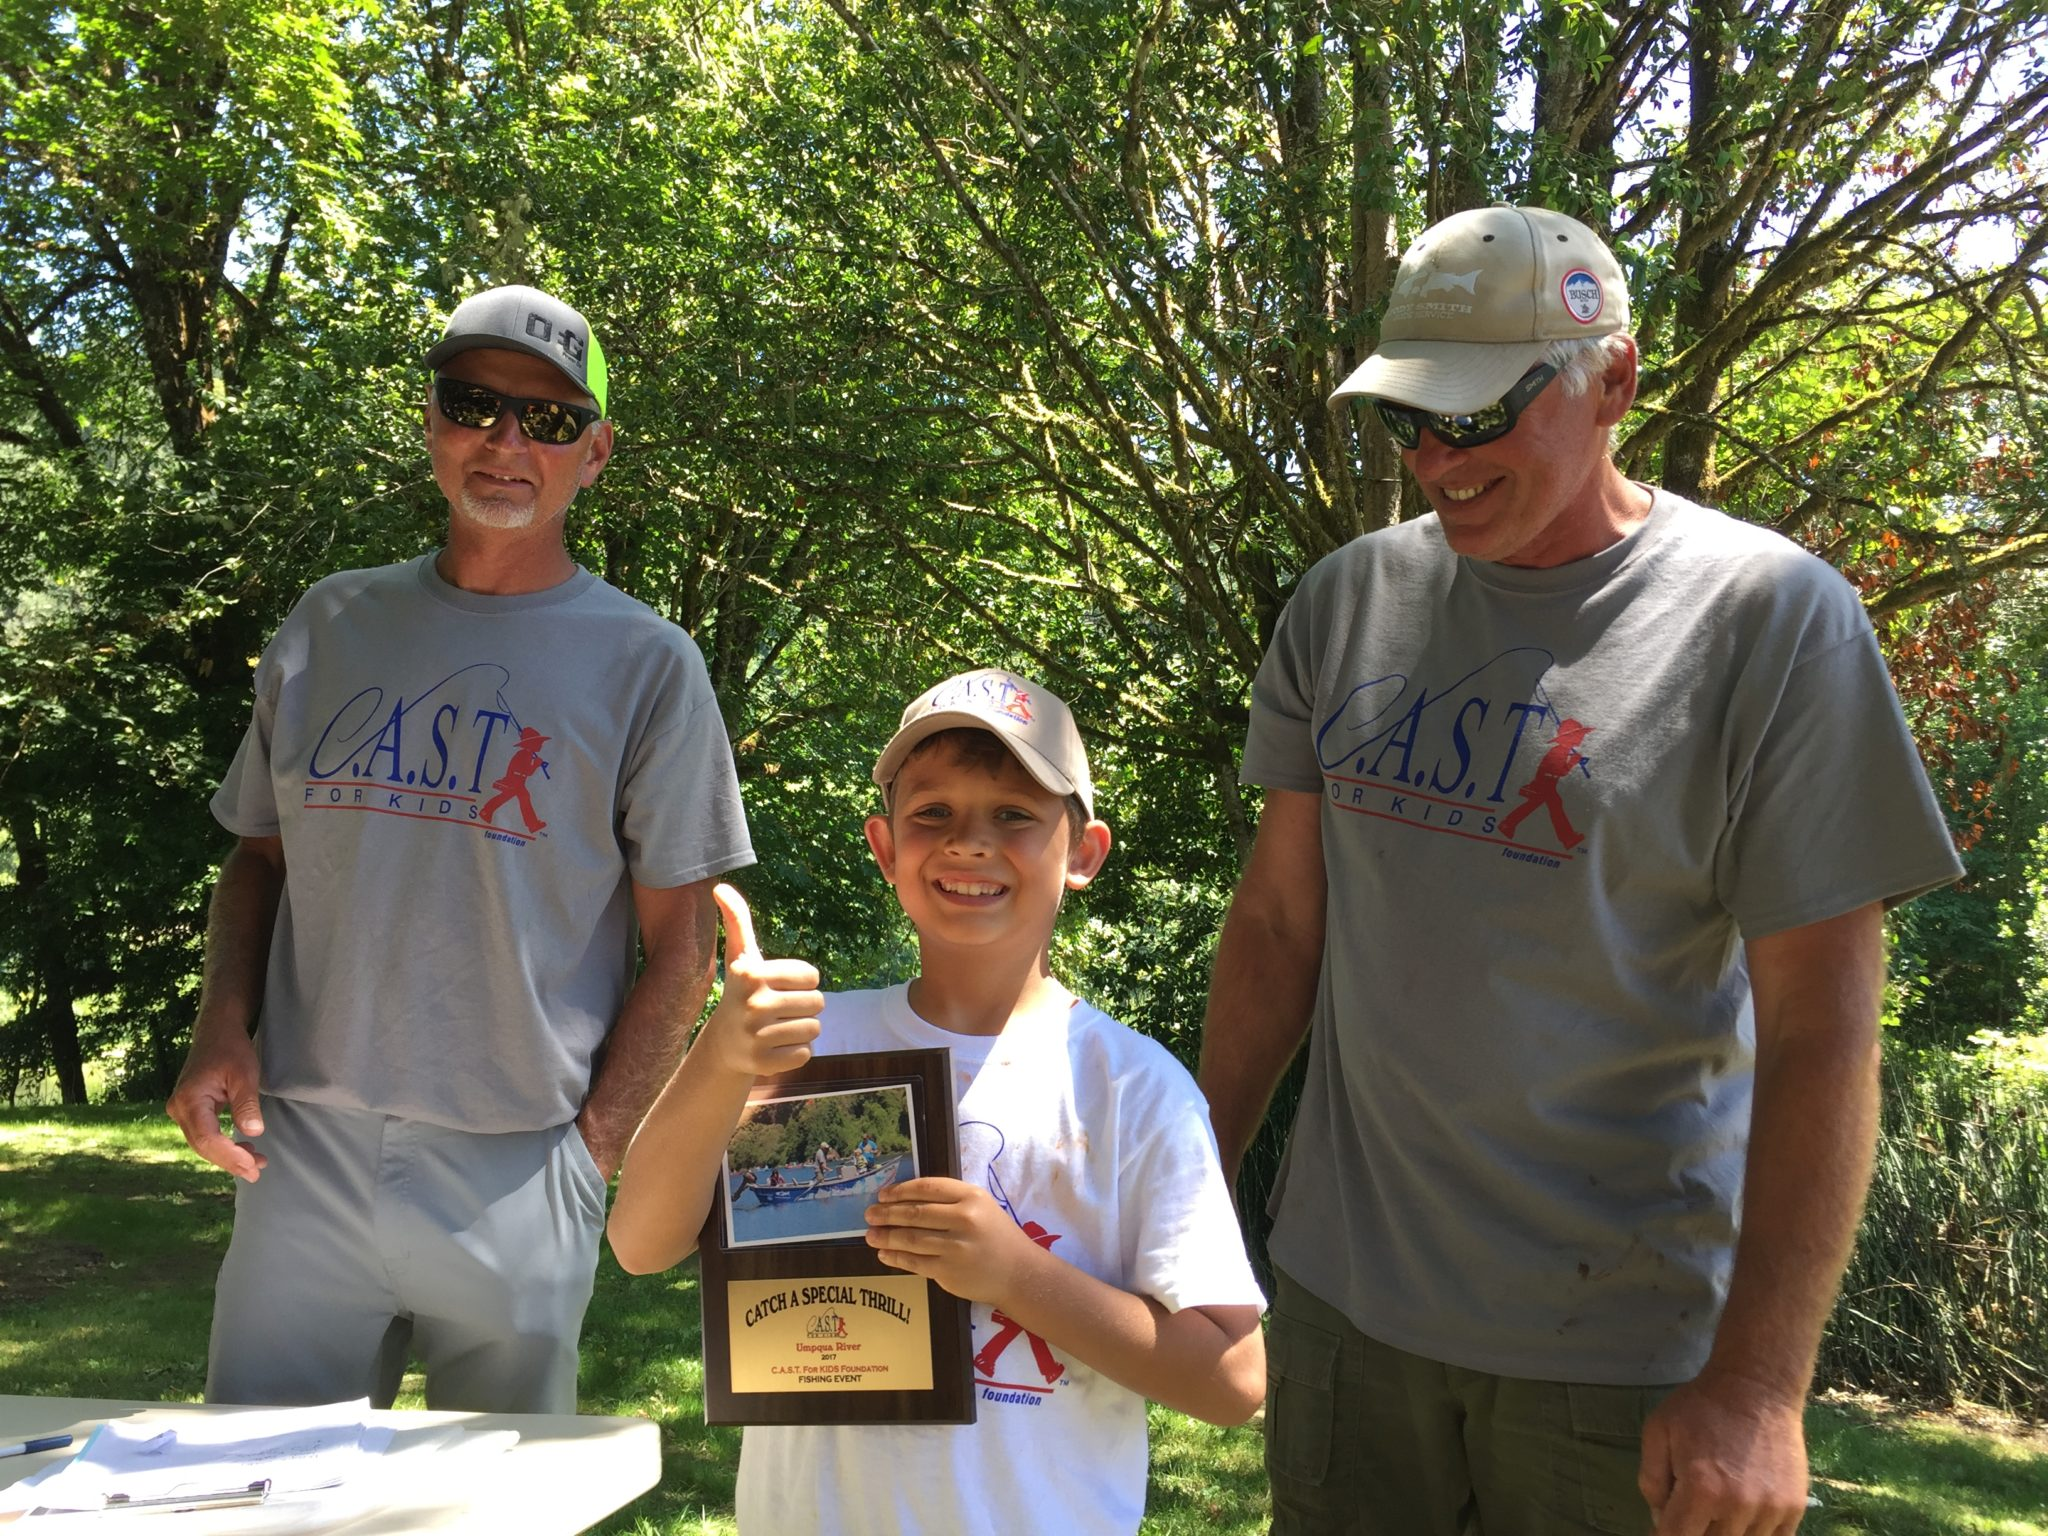 C.A.S.T. for Kids – Umpqua River (OR)